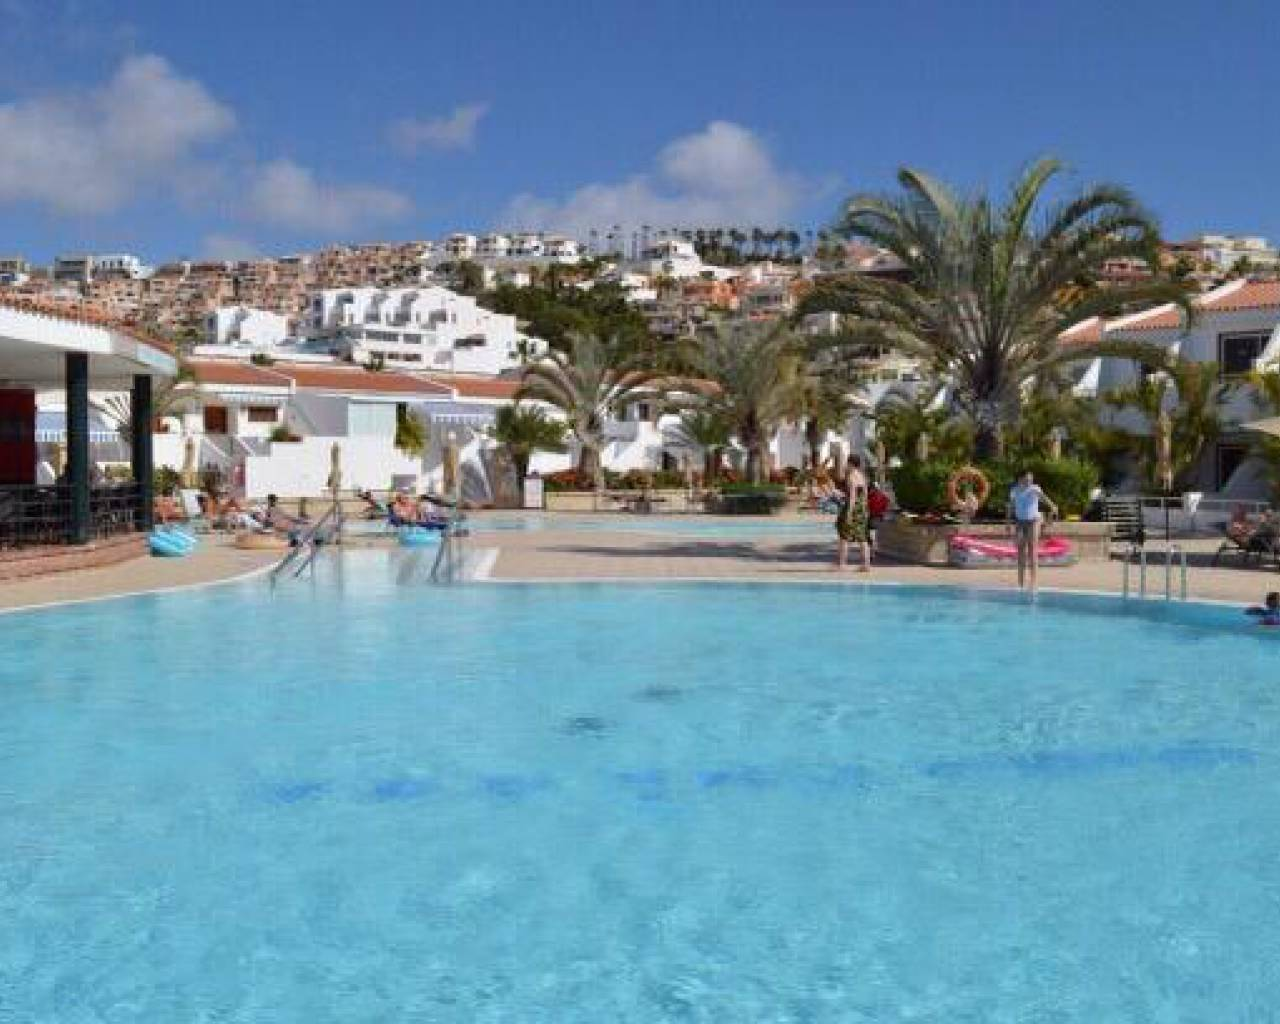 Apartment - Sale - Tenerife - Adeje